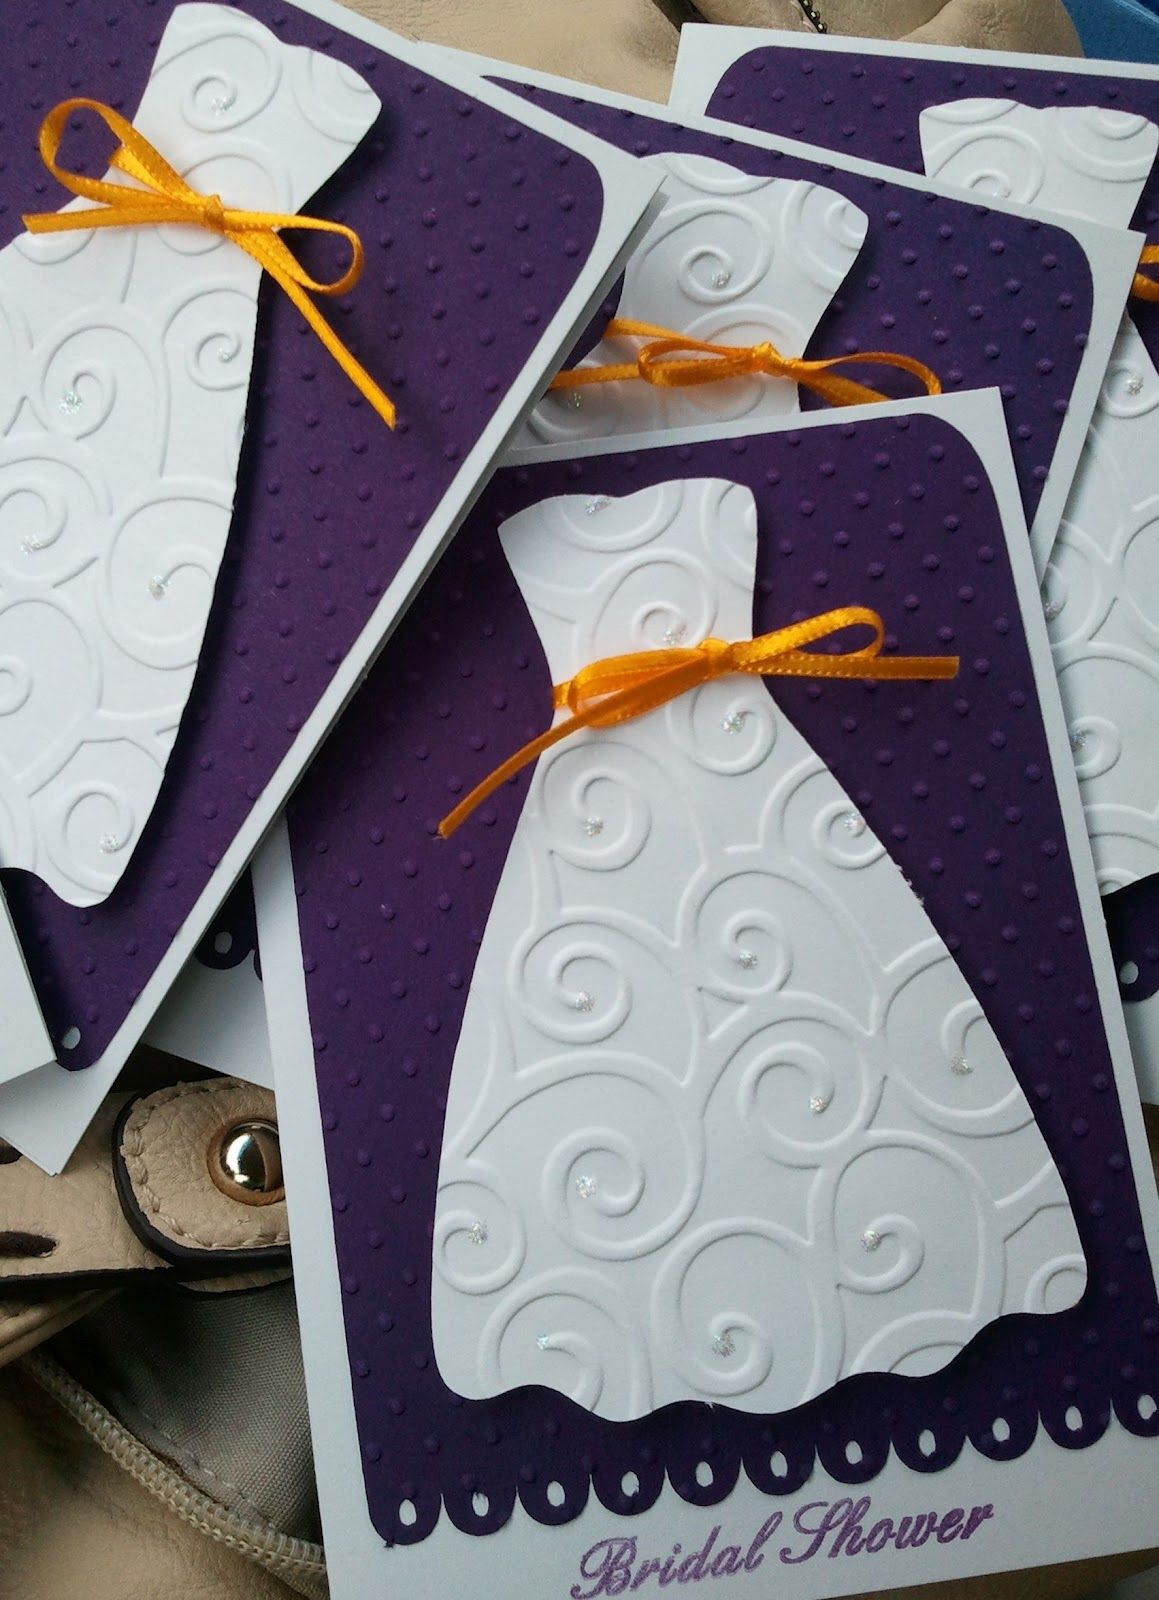 7c75353a107f wedding shower invitations made with cricut - Google Search ...